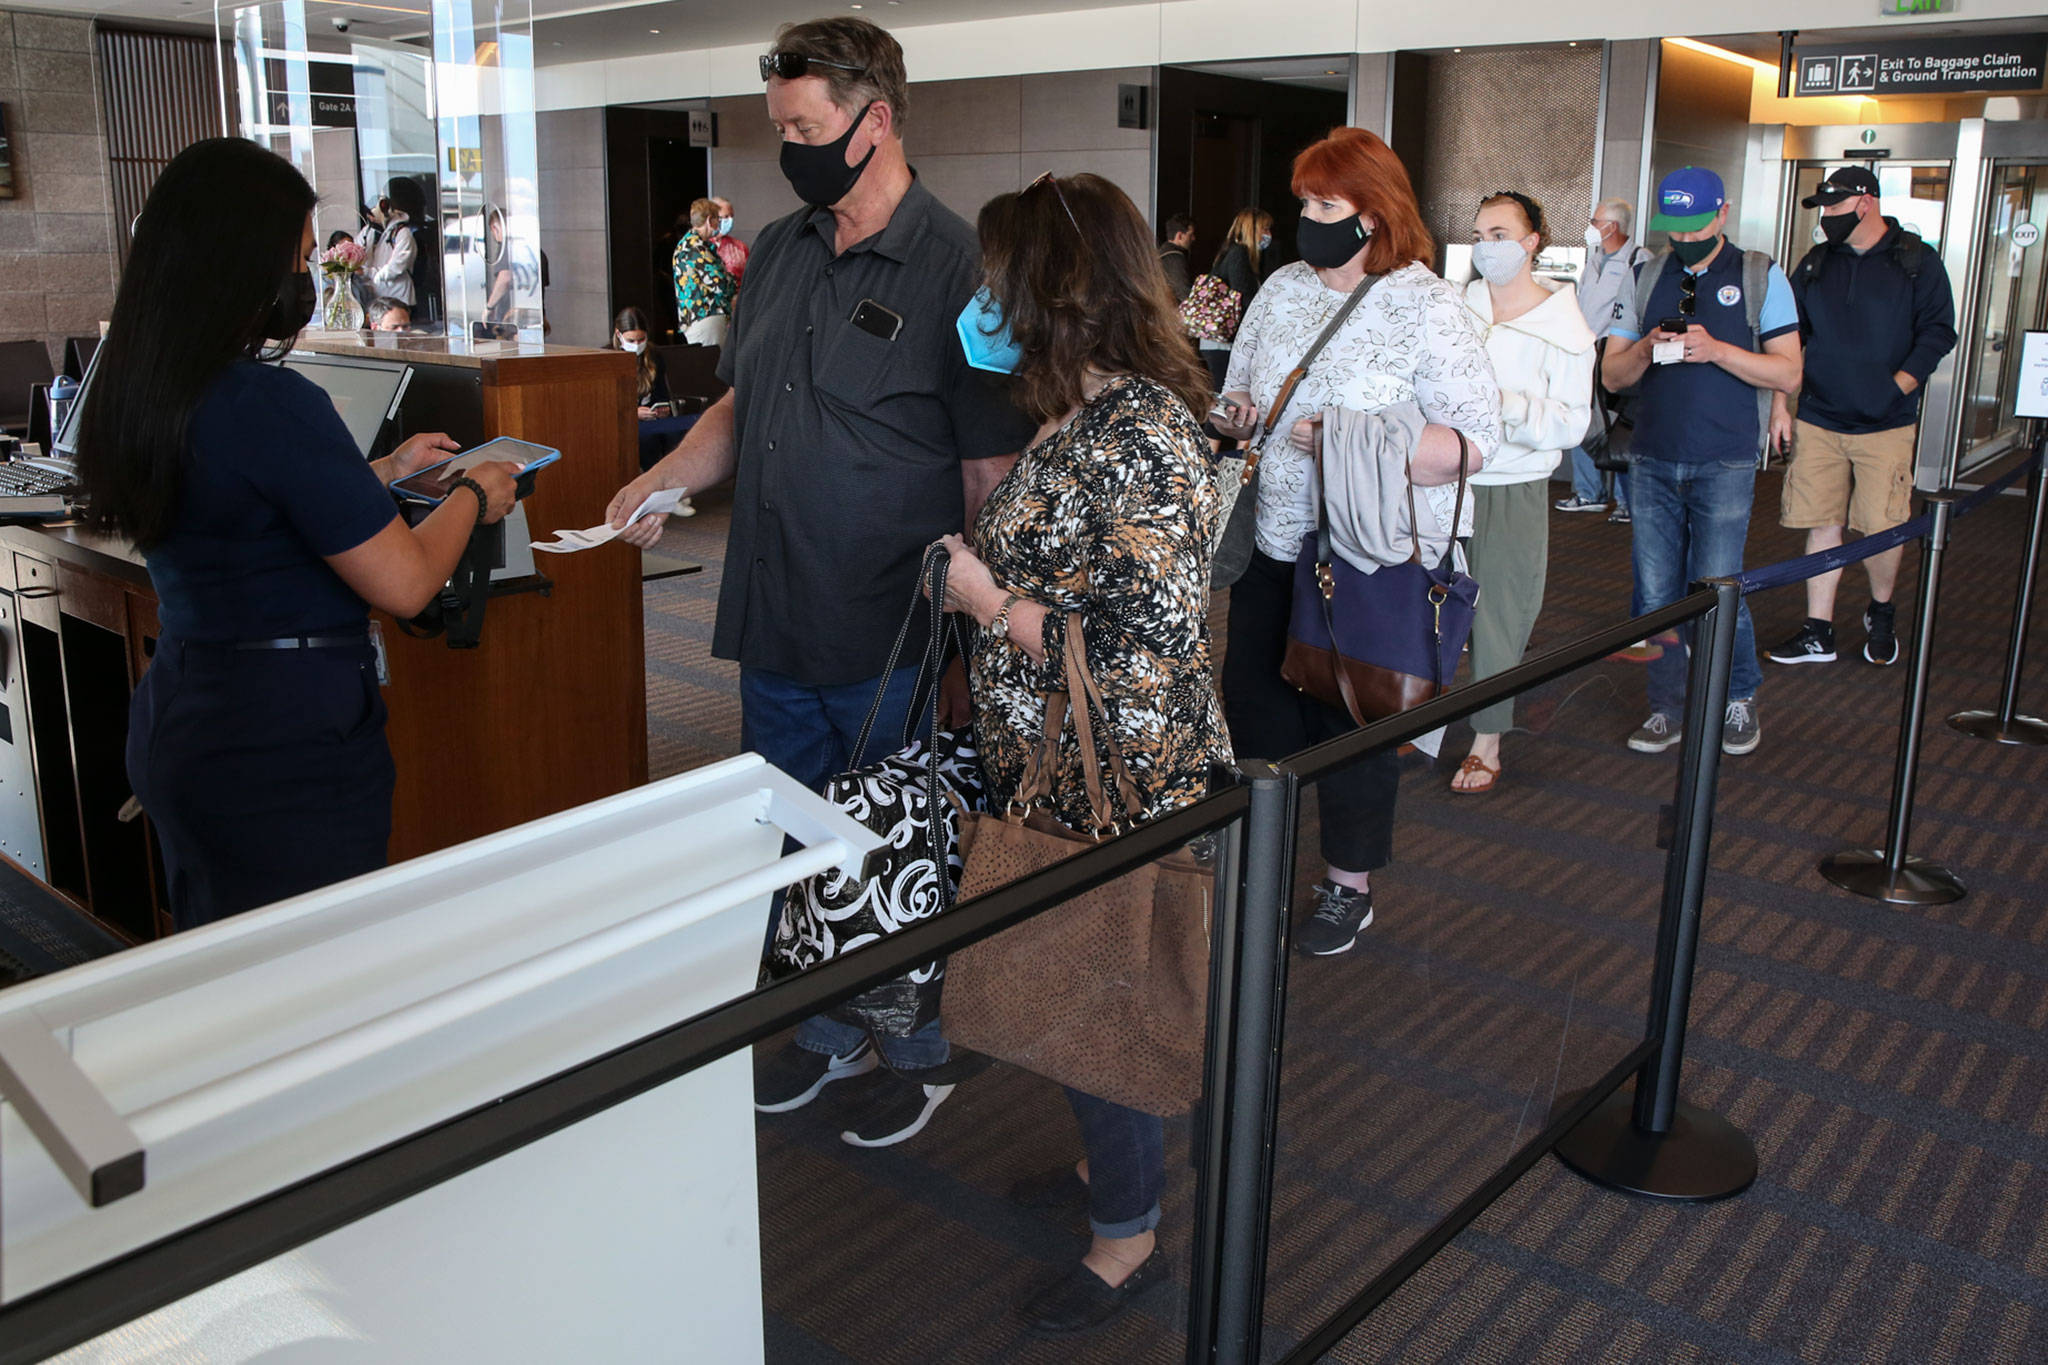 Passengers line up to board a flight to Las Vegas at Paine Field in Everett on May 19. (Kevin Clark / Herald file)